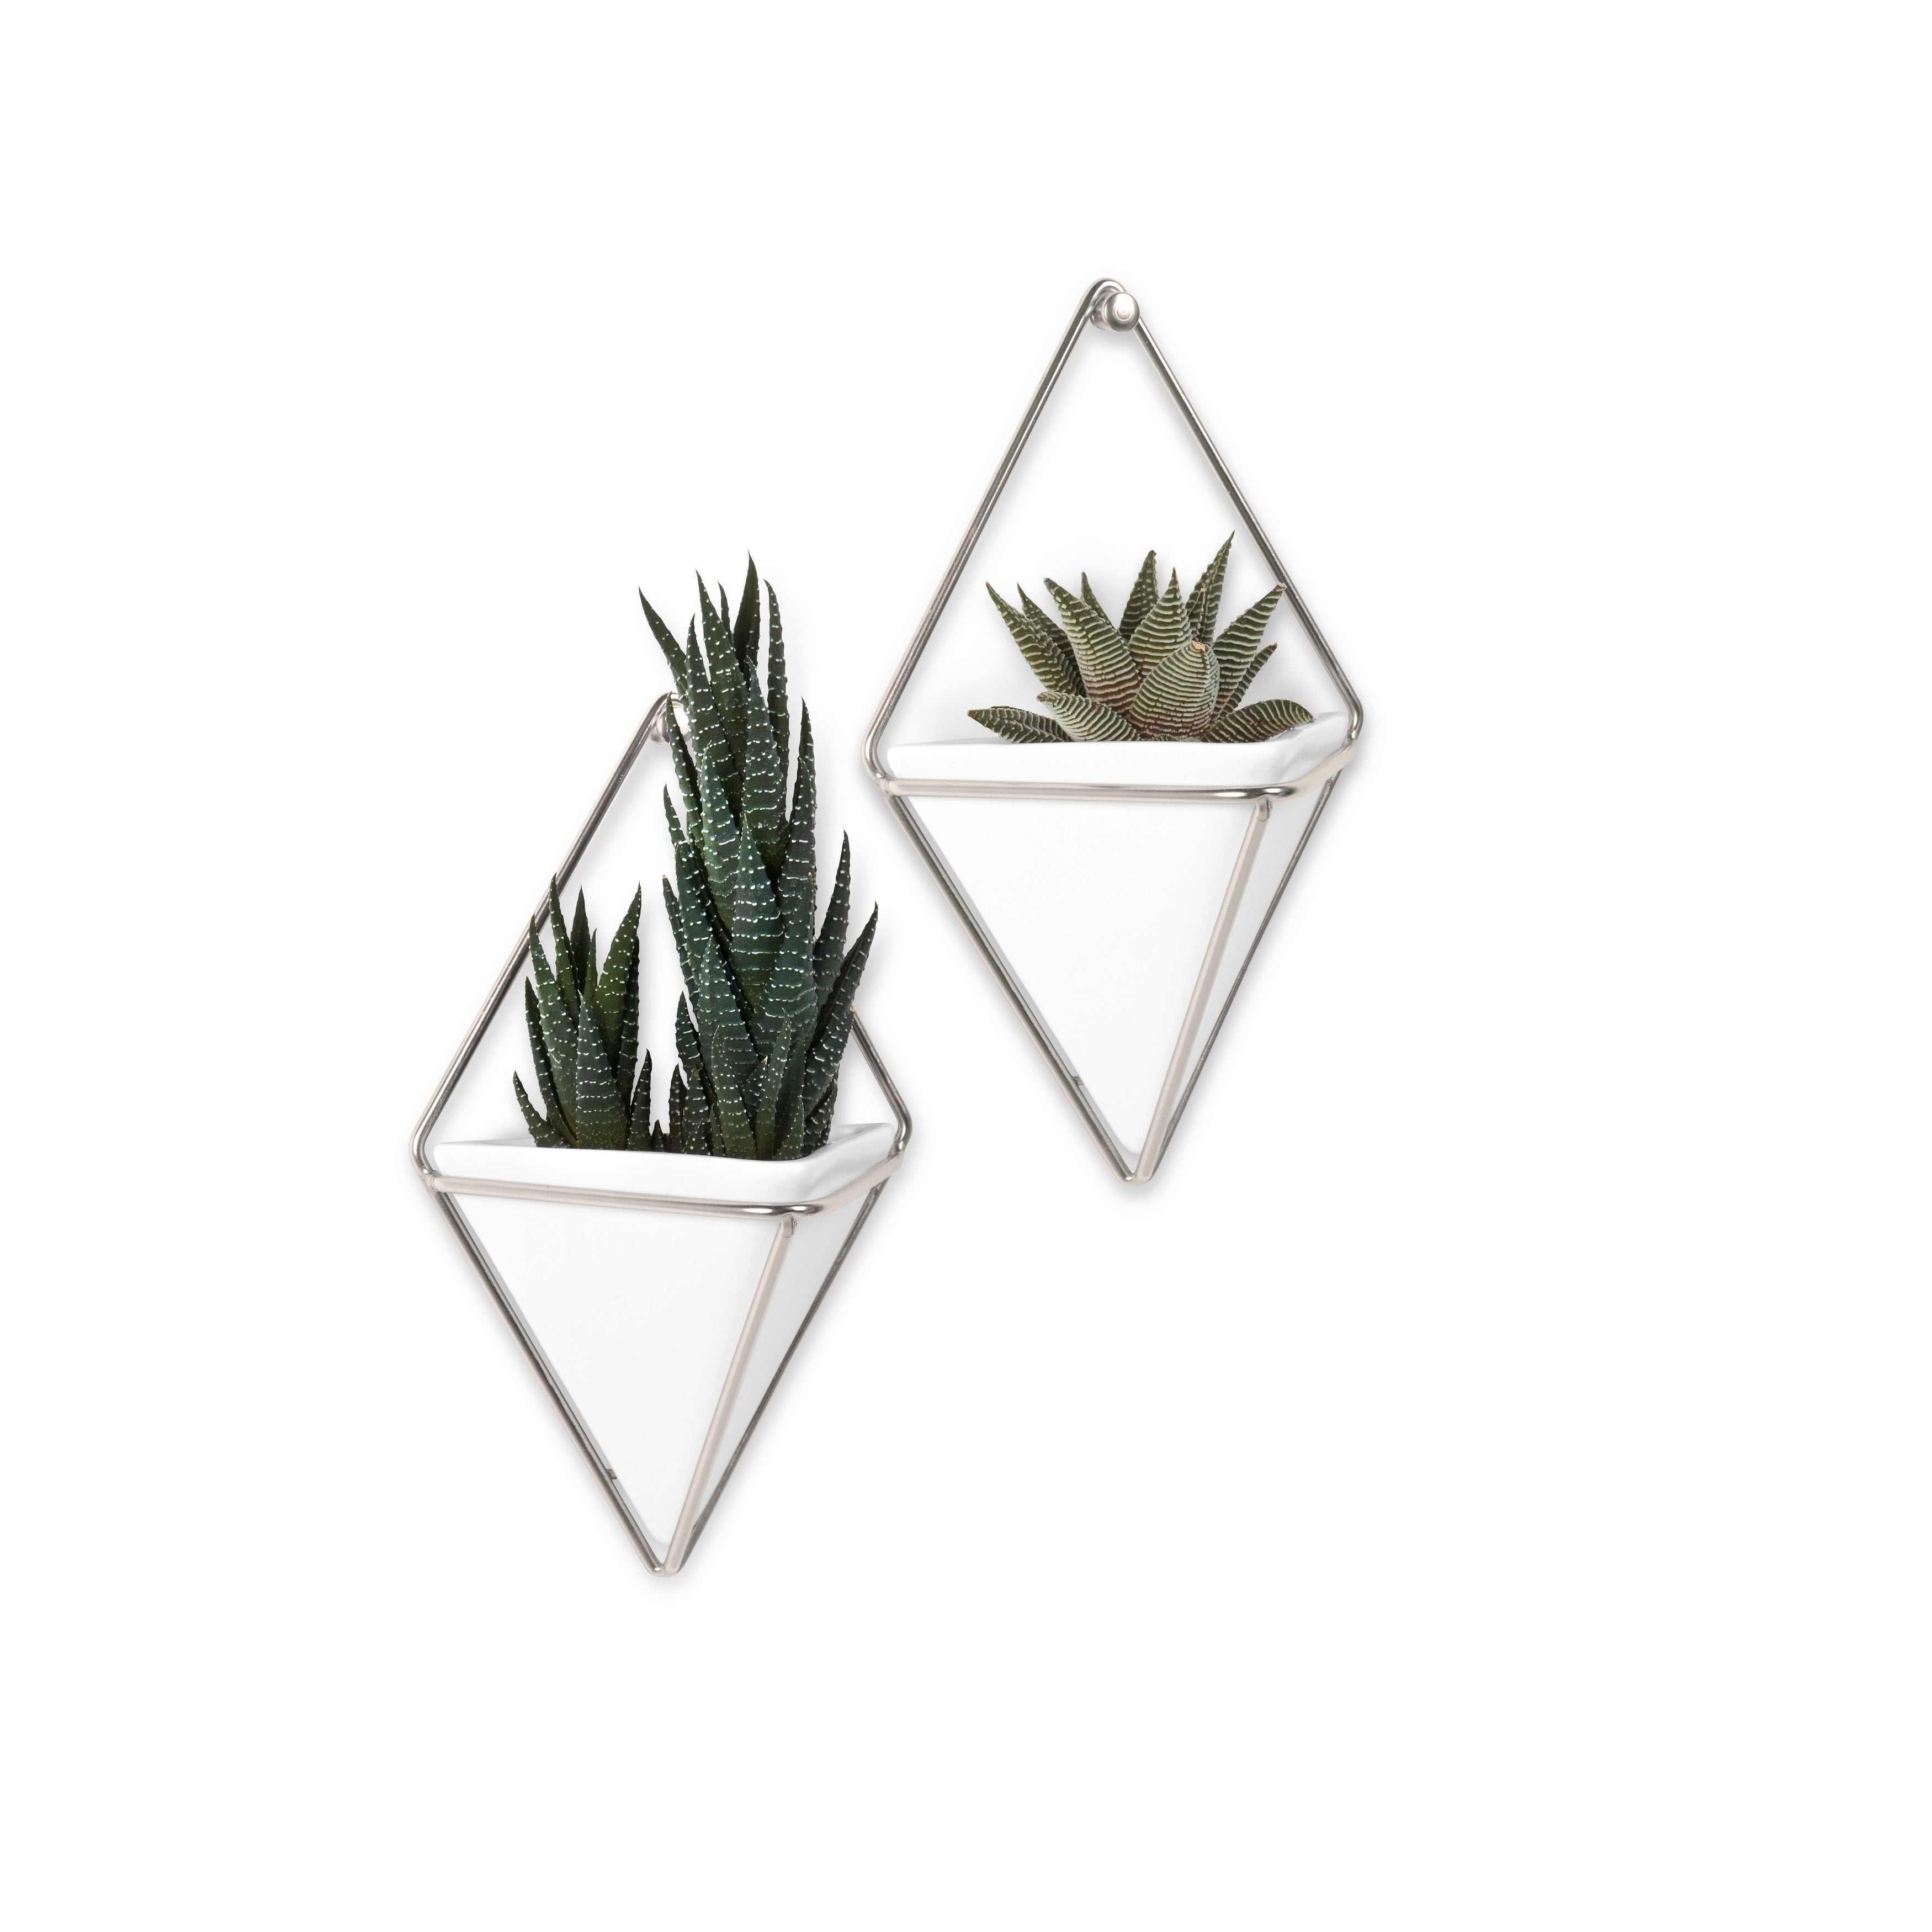 Shop Umbra Trigg Hanging Planter & Wall Decor (Set Of 2) – Free Throughout Preferred 2 Piece Trigg Wall Decor Sets (Set Of 2) (Gallery 6 of 20)